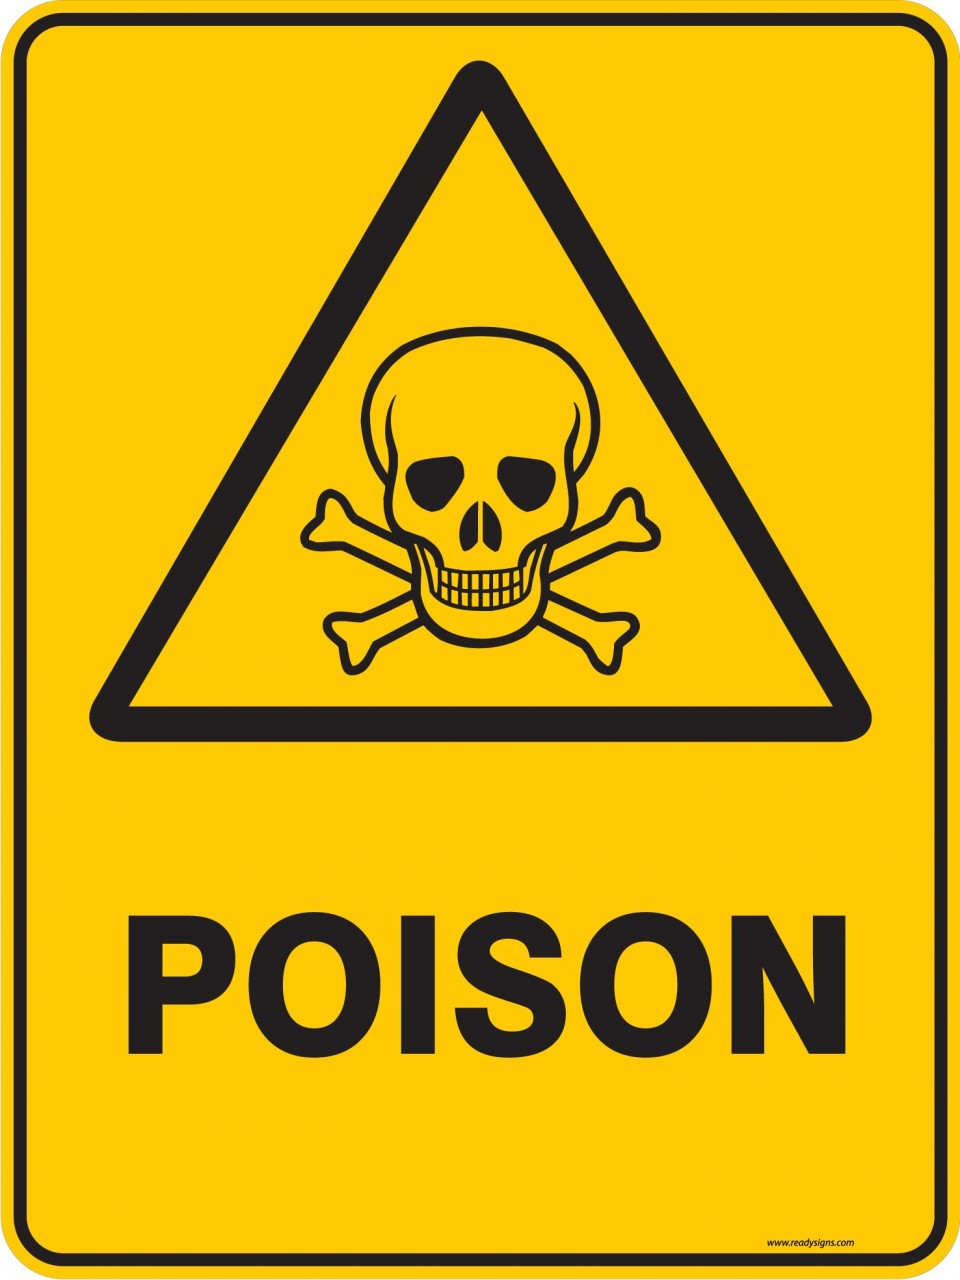 Warning Sign - POISON - Ready Signs